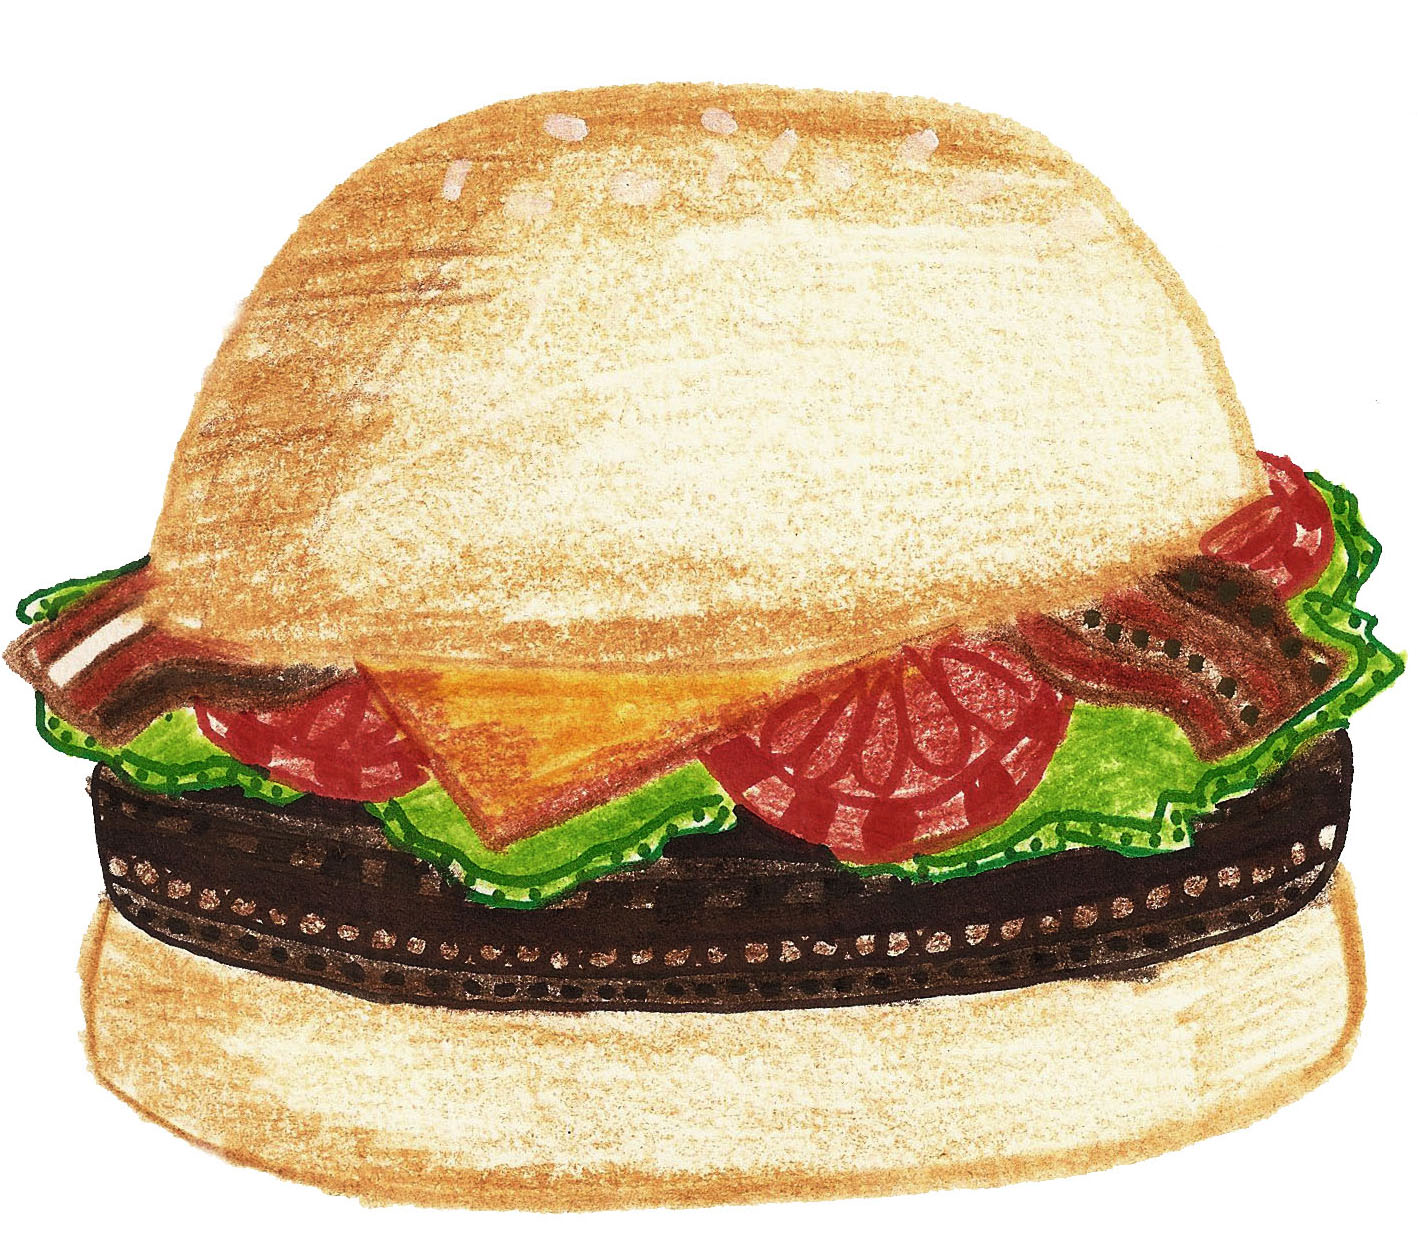 This is a cheeseburger with bacon and lettuce and tomatoes Bacon Cheeseburger Clip Art